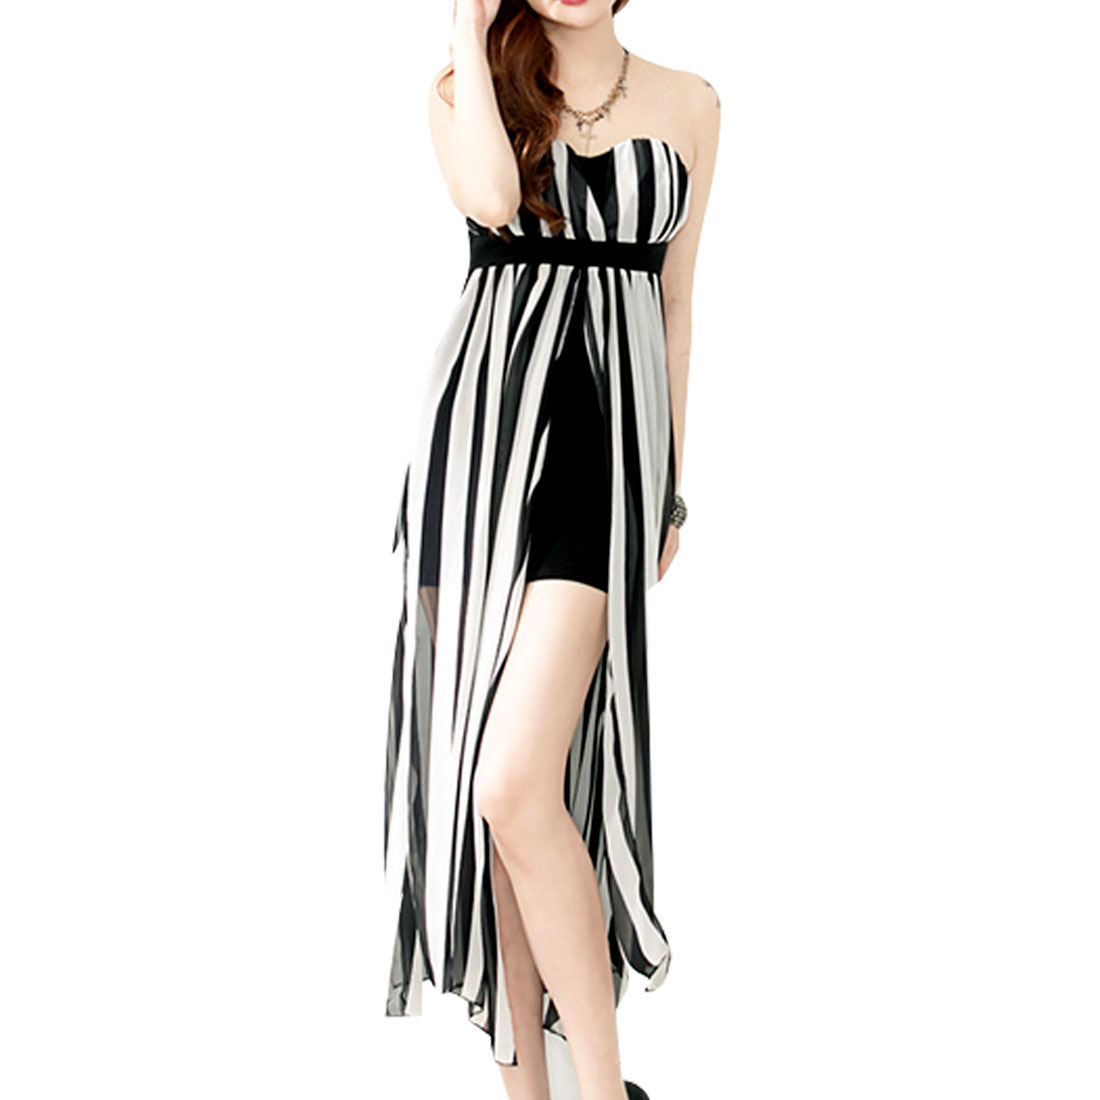 Strapless Ruffled Padded Bust Sheer Chiffon Dress Black White XS for Ladies